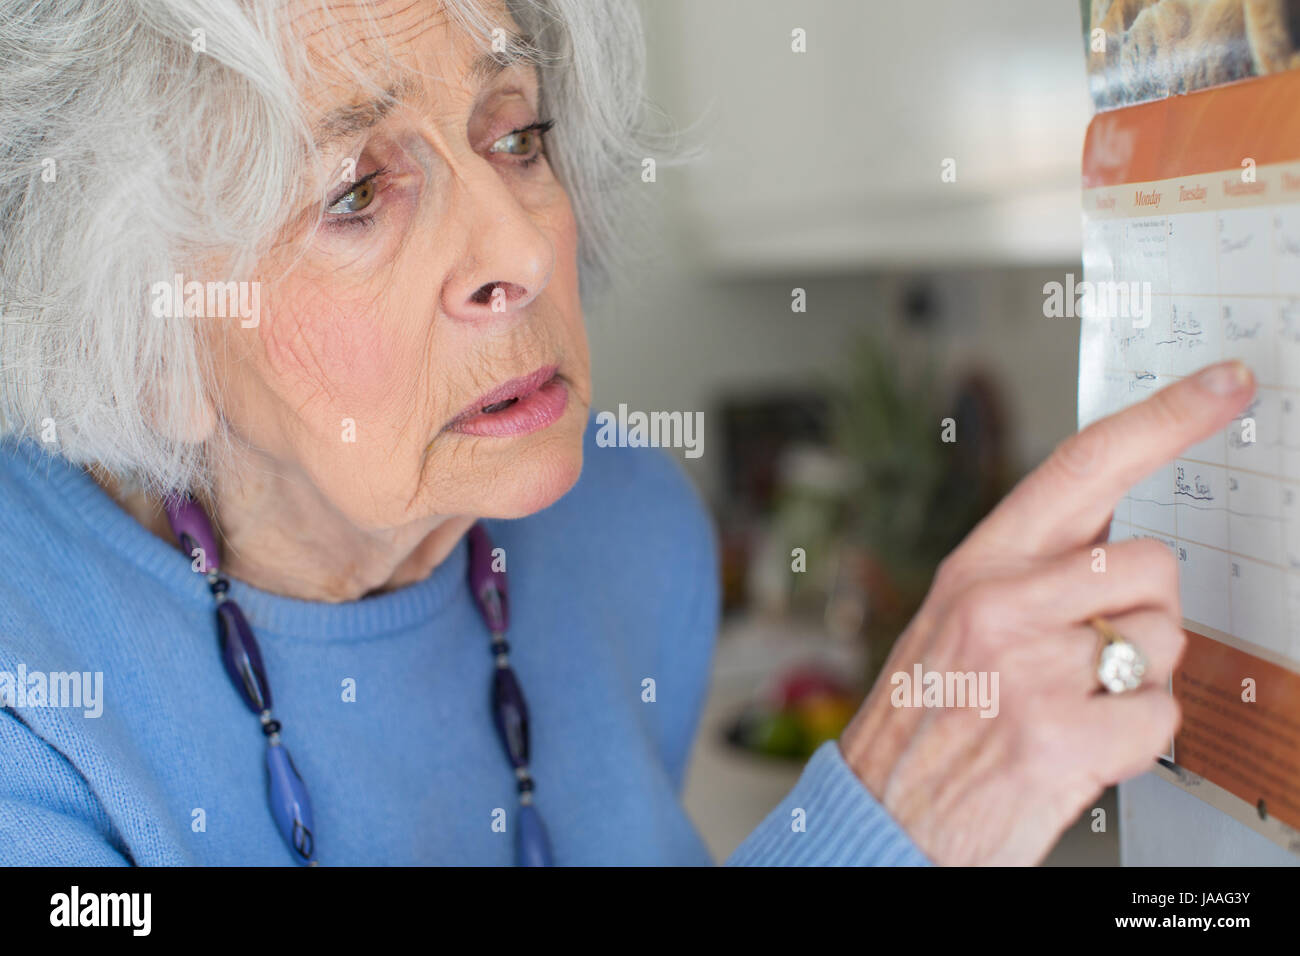 Confused Senior Woman With Dementia Looking At Wall Calendar - Stock Image